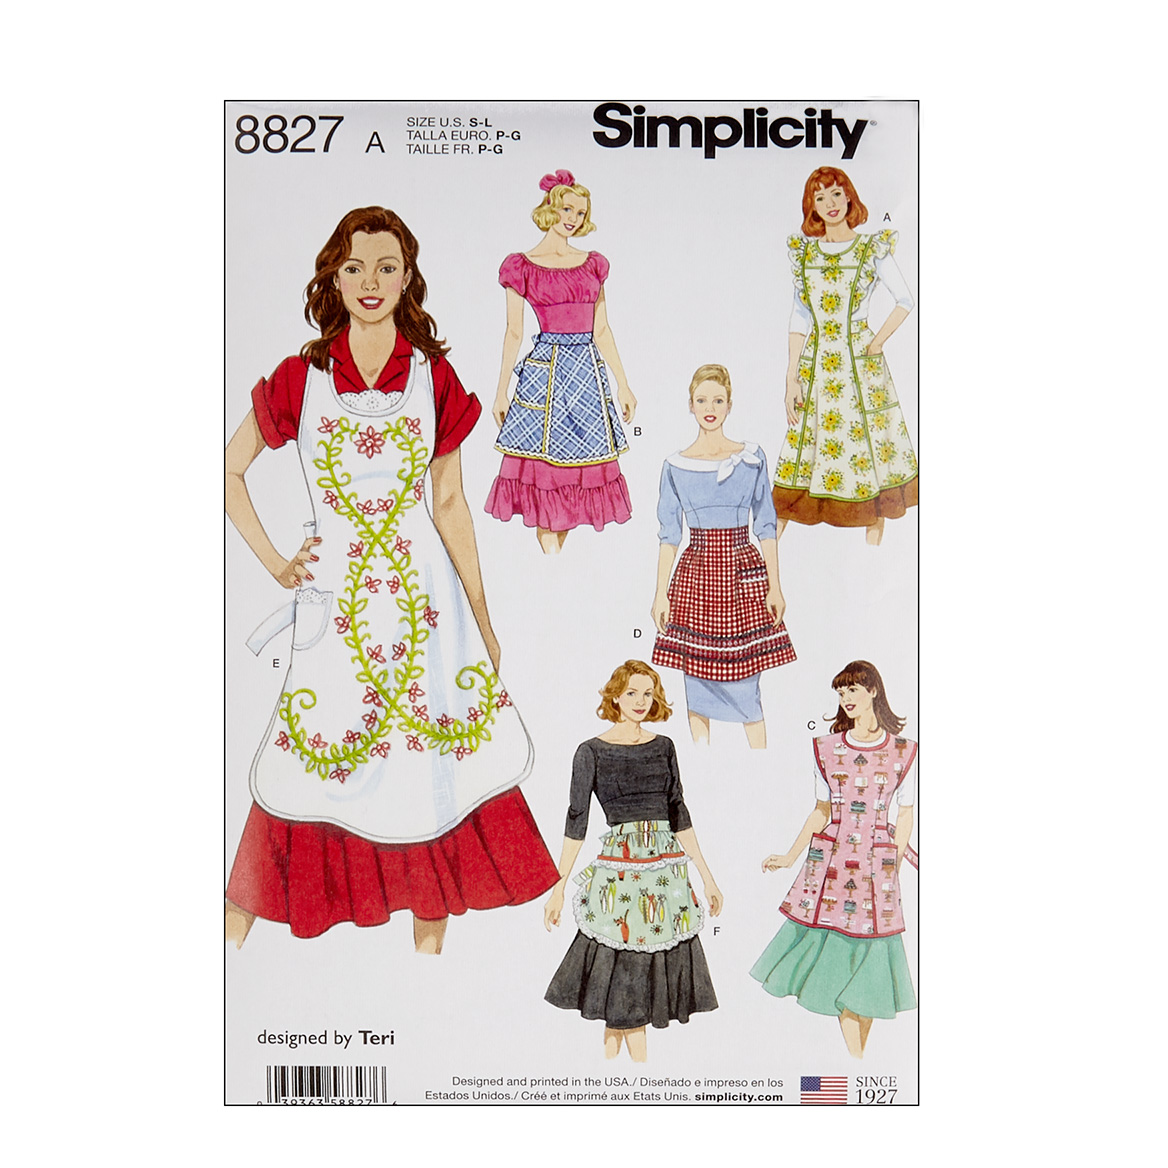 Vintage Aprons, Retro Aprons, Old Fashioned Aprons & Patterns Simplicity 8827 Misses Aprons A Sizes S-M-L $11.97 AT vintagedancer.com